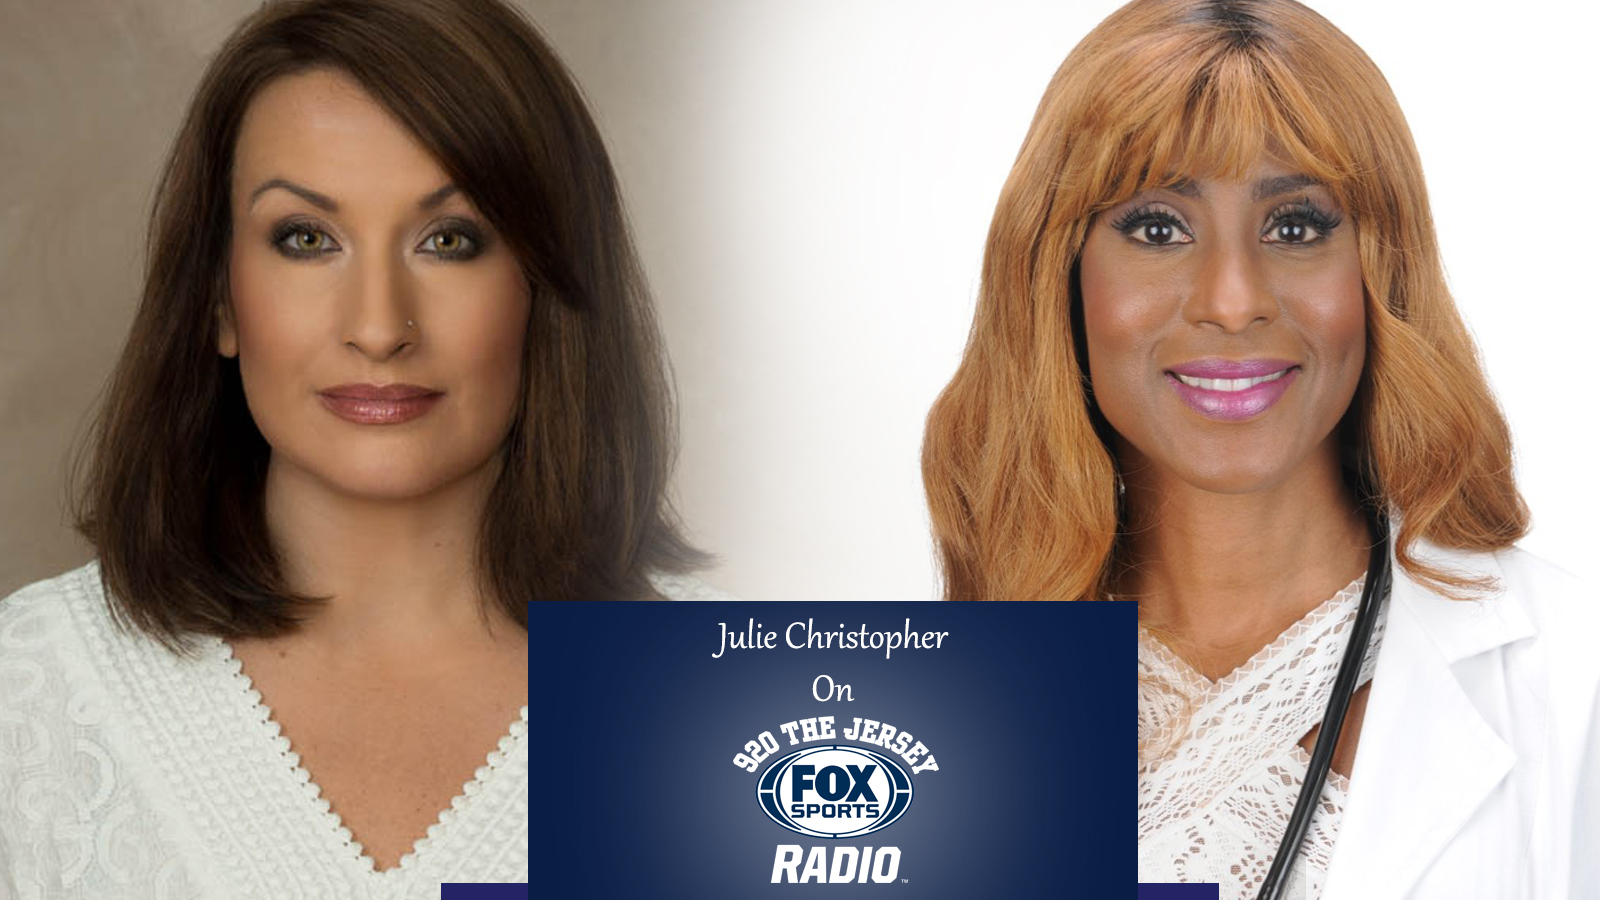 920 The Jersey Fox Sports Radio – Dr Veronica Interviews Julie Christopher